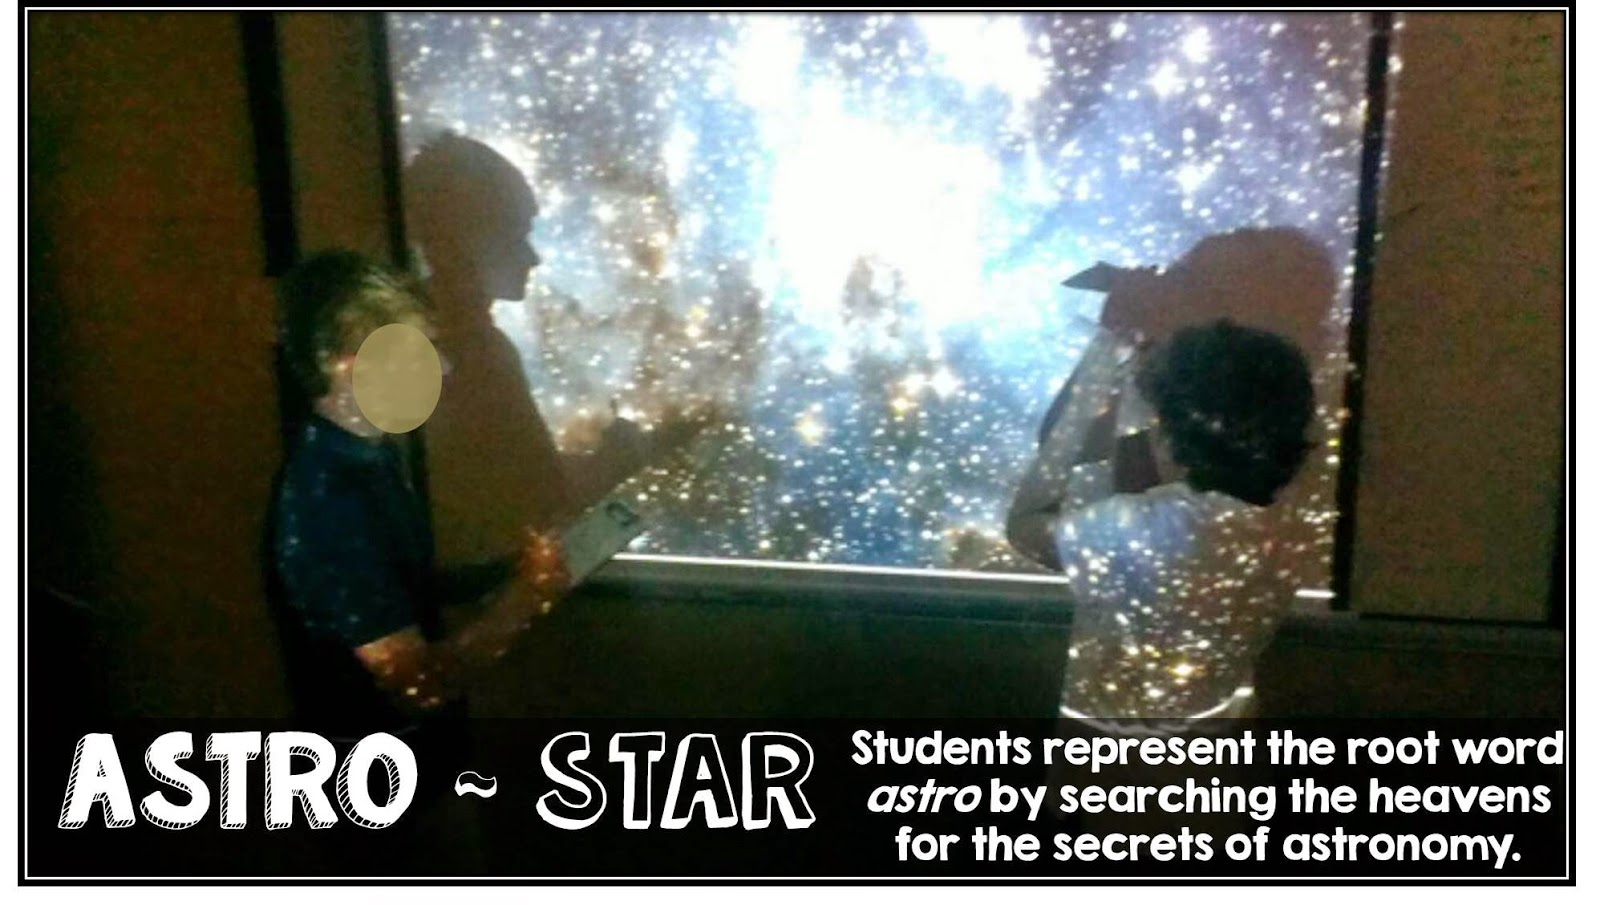 Students represent the root word astro by searching the heavens for the secrets of astronomy.